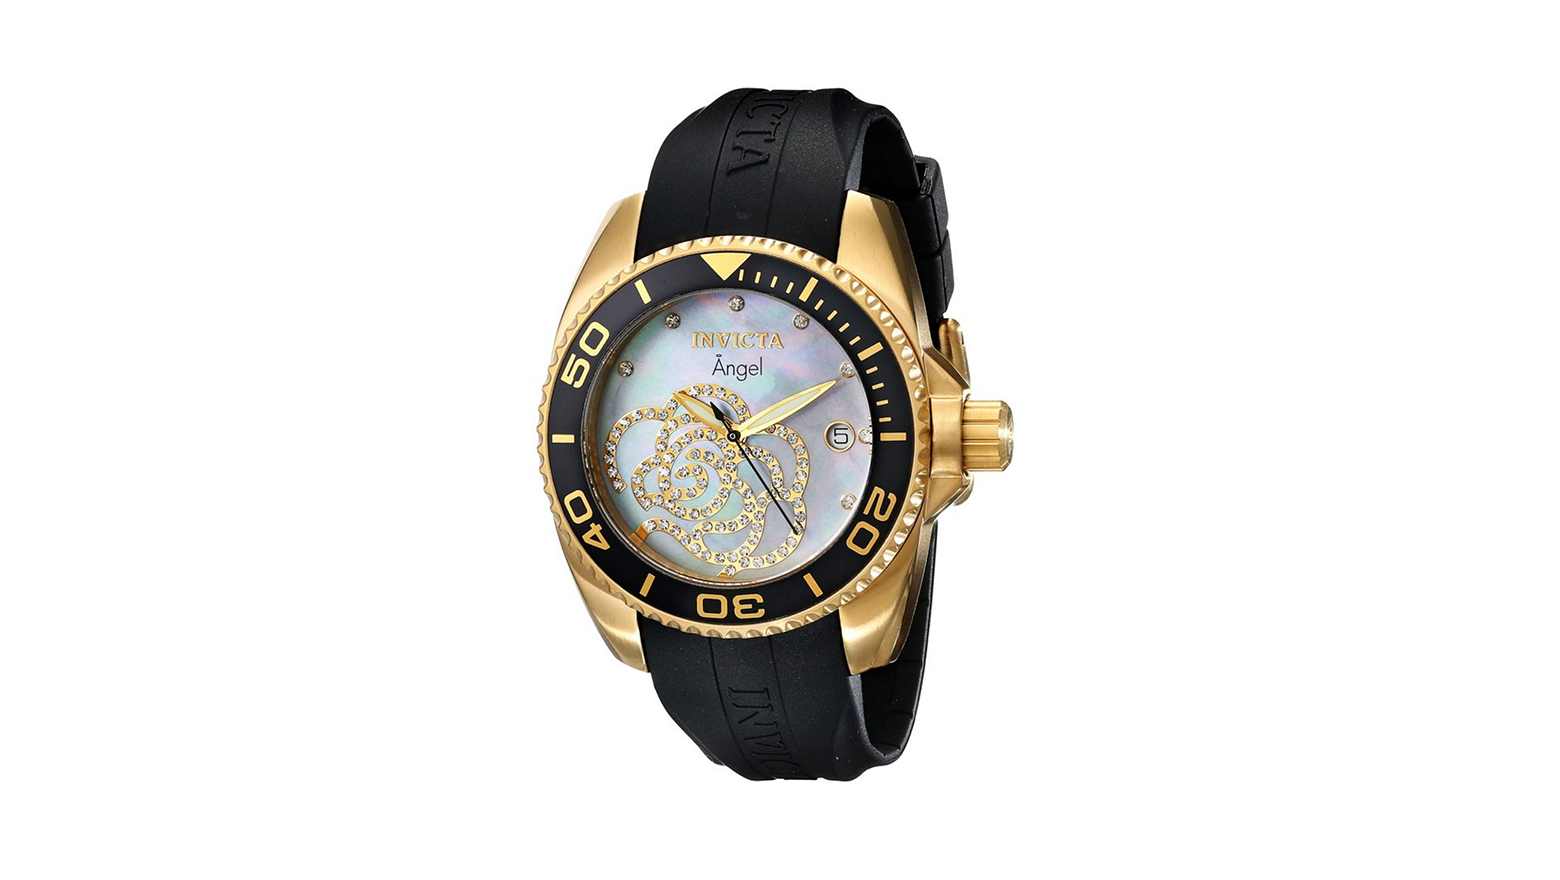 Amazon, cyber monday, cyber monday sales, cyber Monday, watches, ladies watches, women's watches, invicta, invicta watches